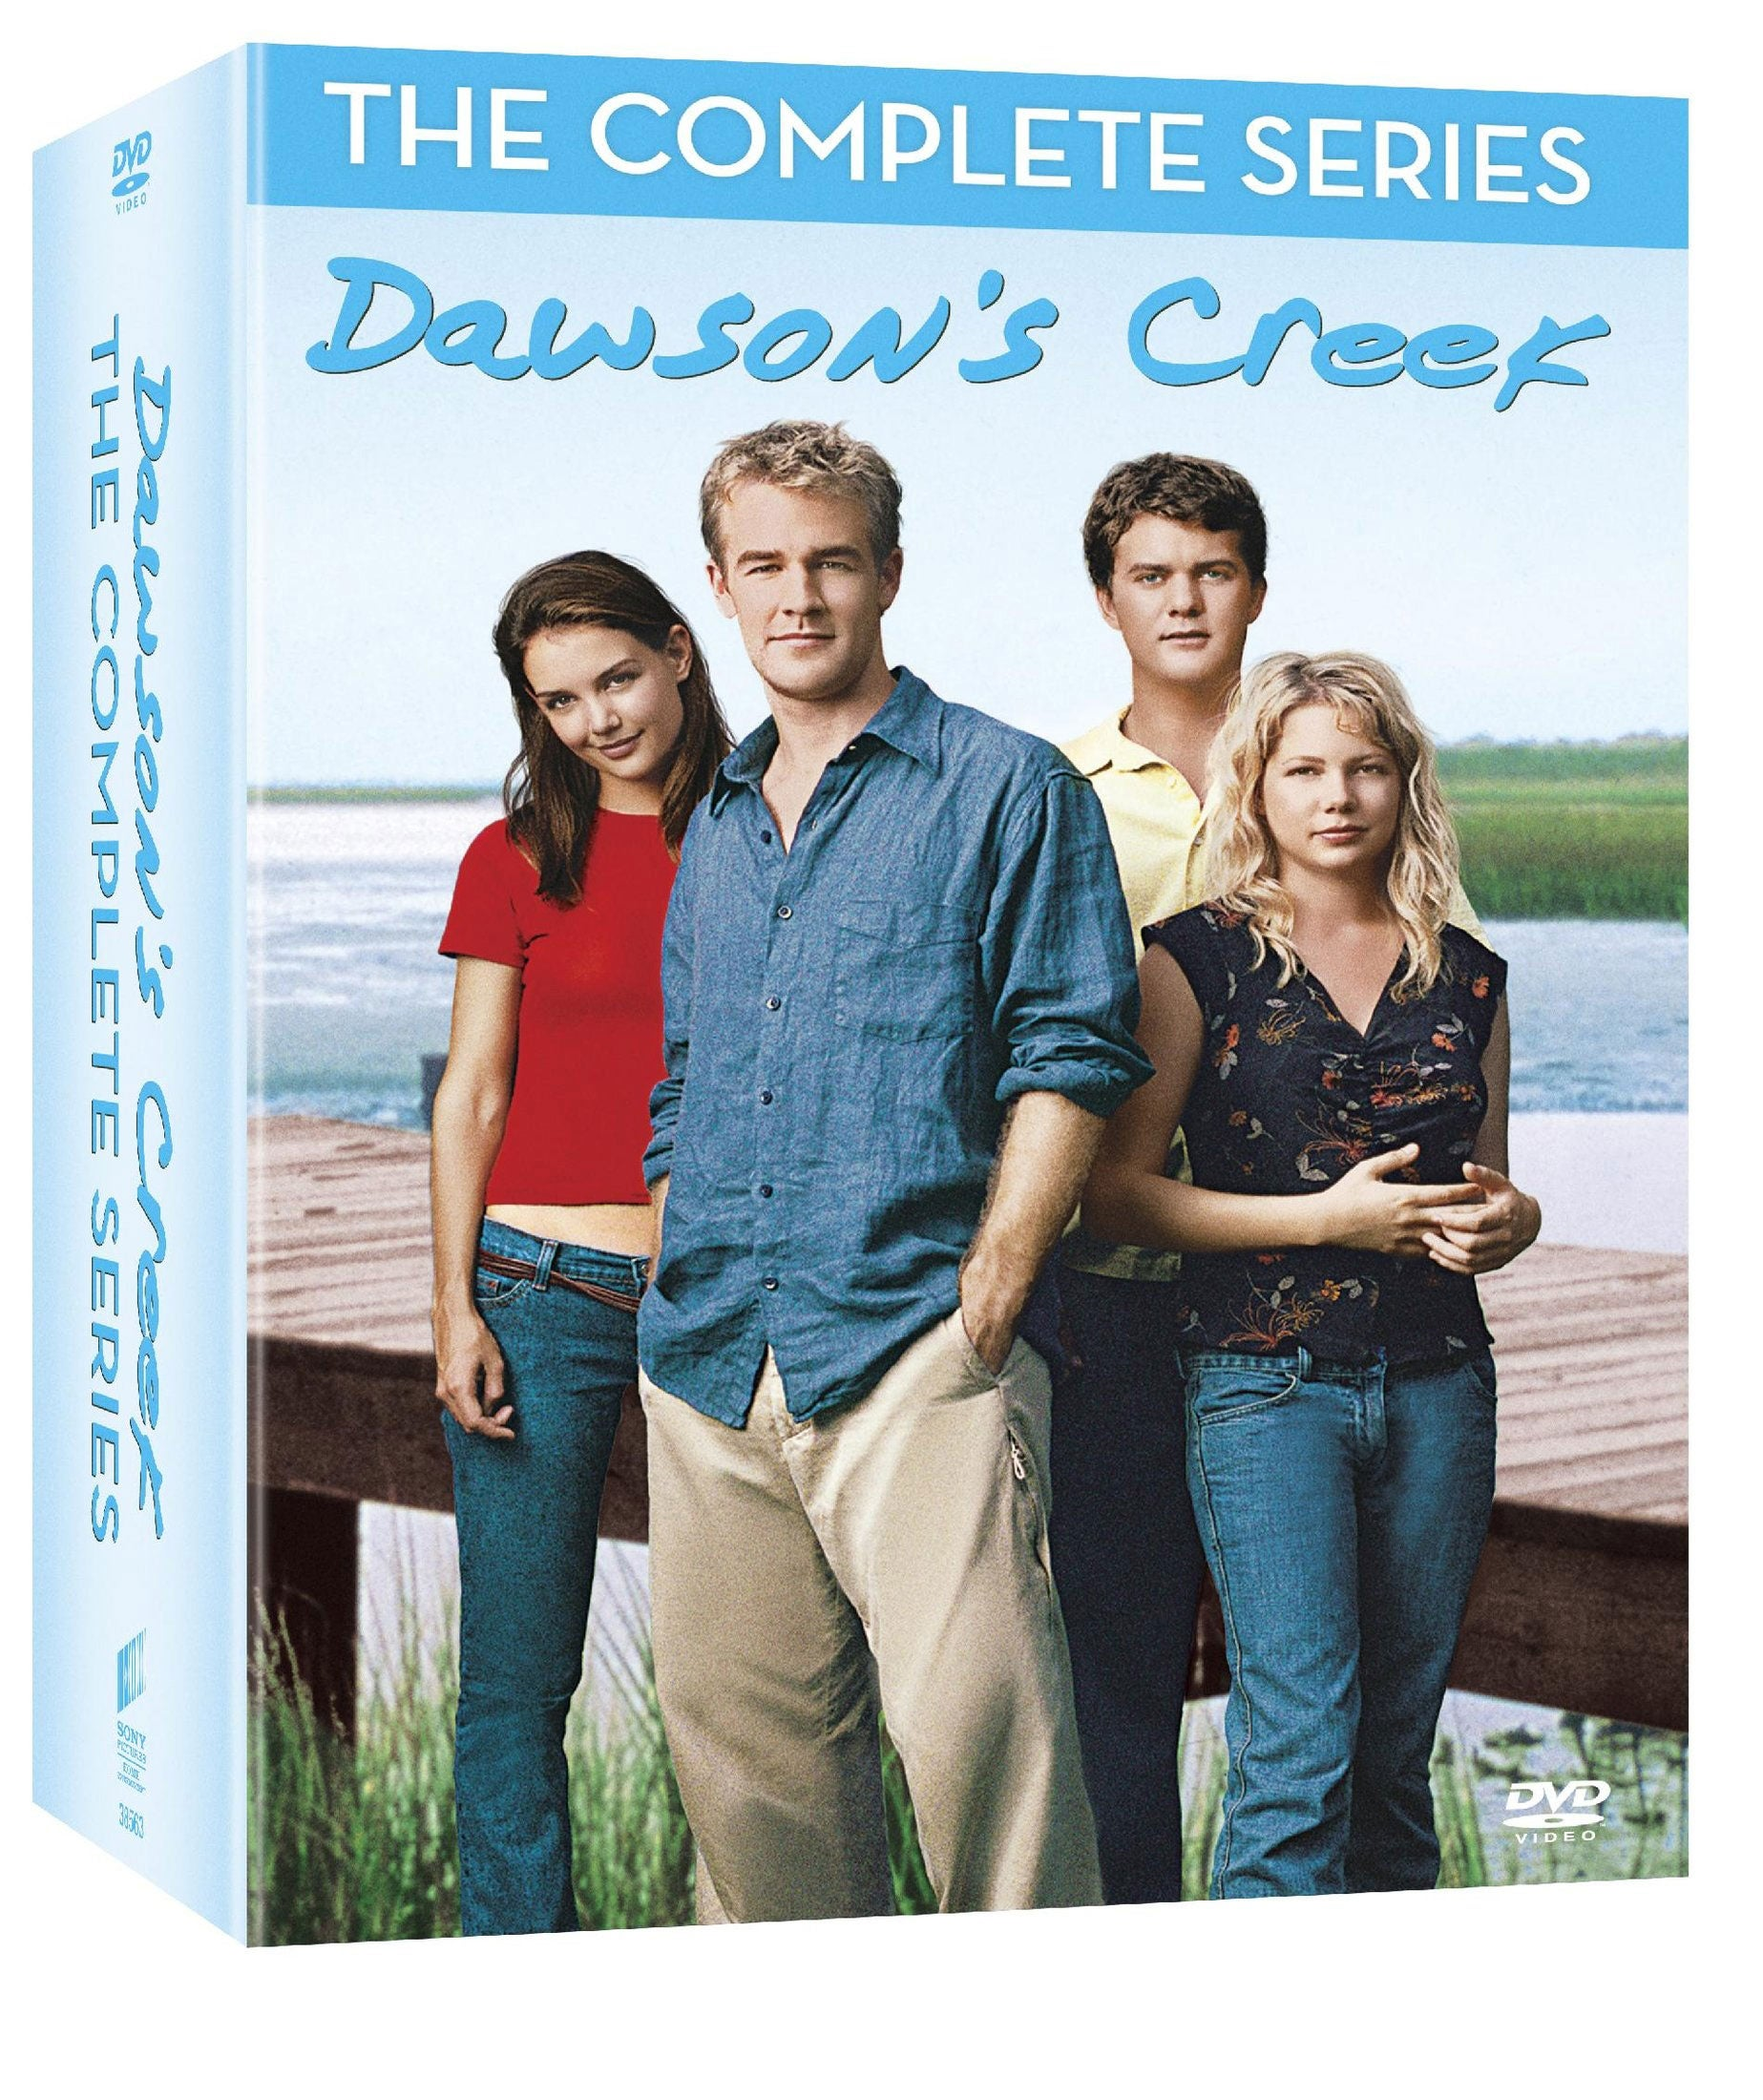 Dawson's Creek: The Complete Series (DVD)